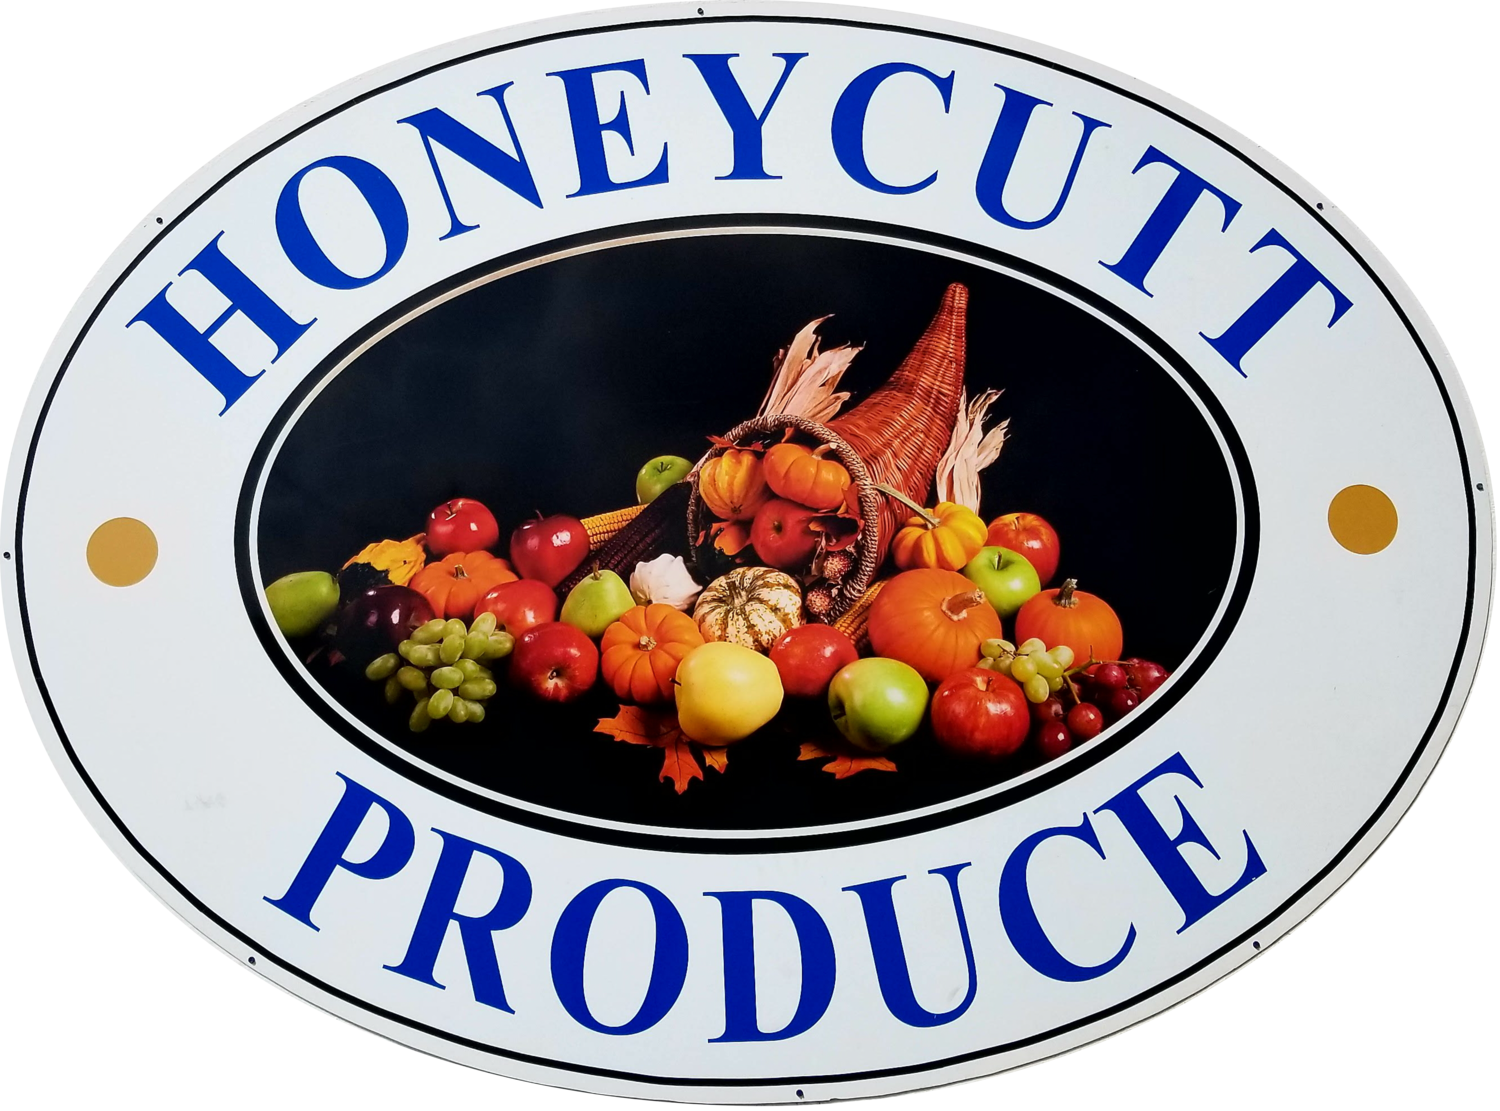 Honeycutt Produce LLC.